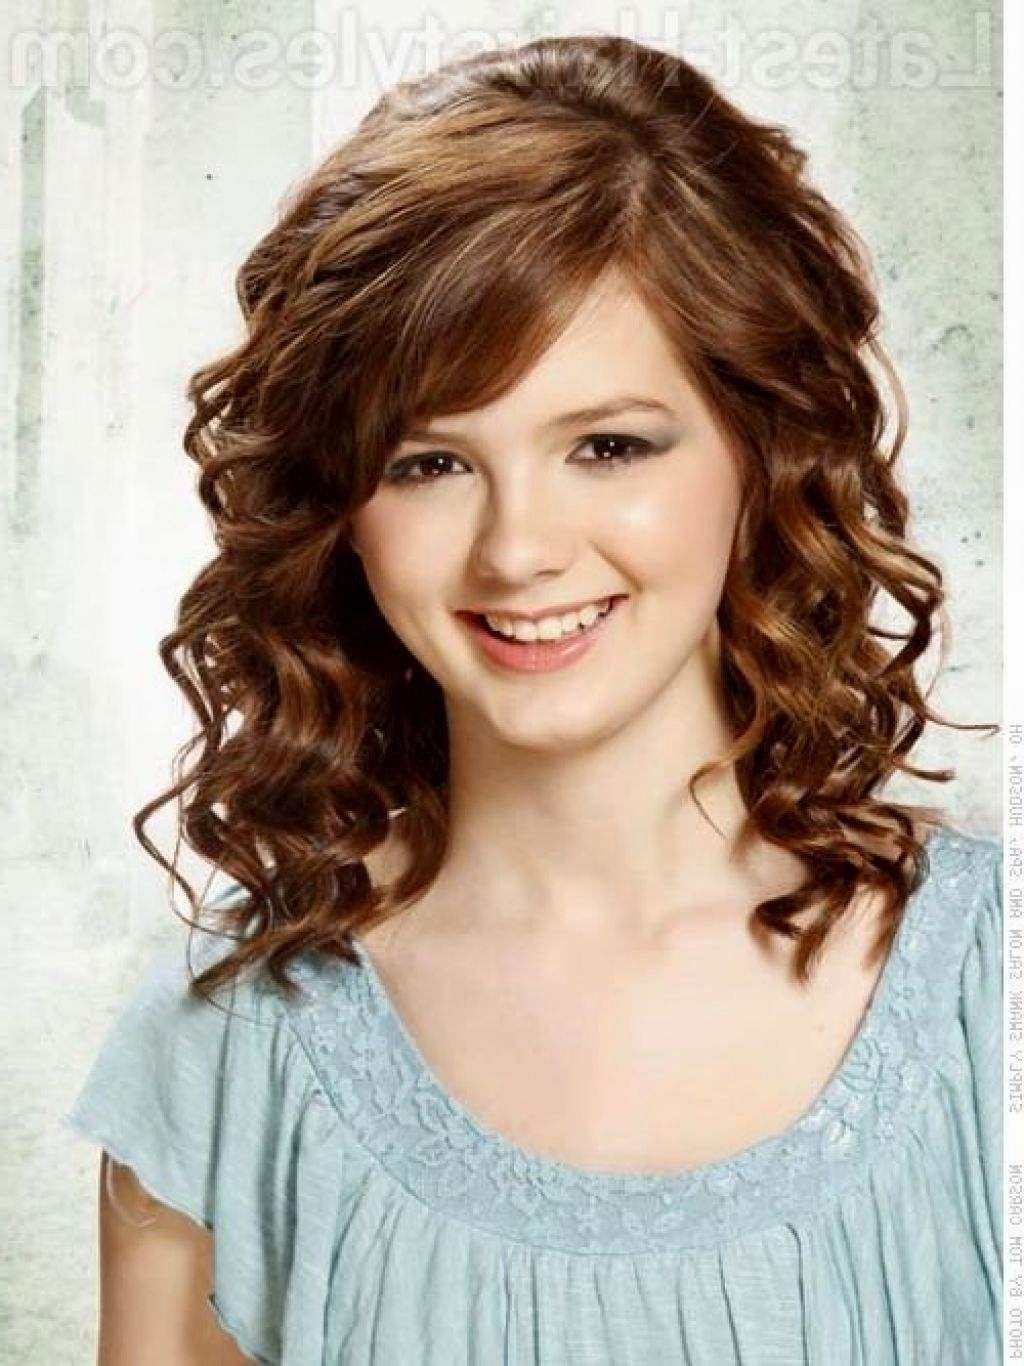 Fascinating Wedding Hairstyles For Medium Length Curly Hair Party With Regard To Well Known Wedding Hairstyles For Medium Length Curly Hair (View 6 of 15)